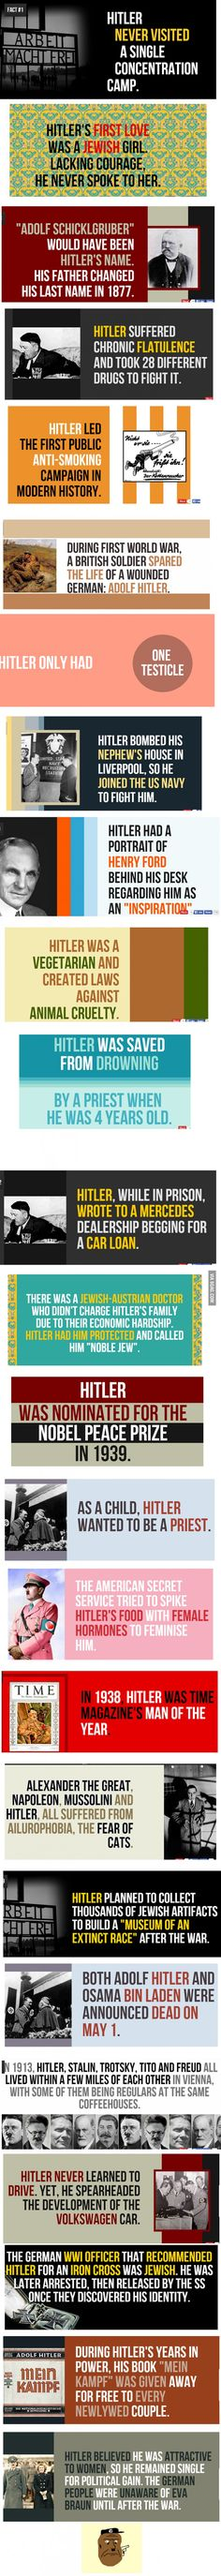 Some Hitler Facts